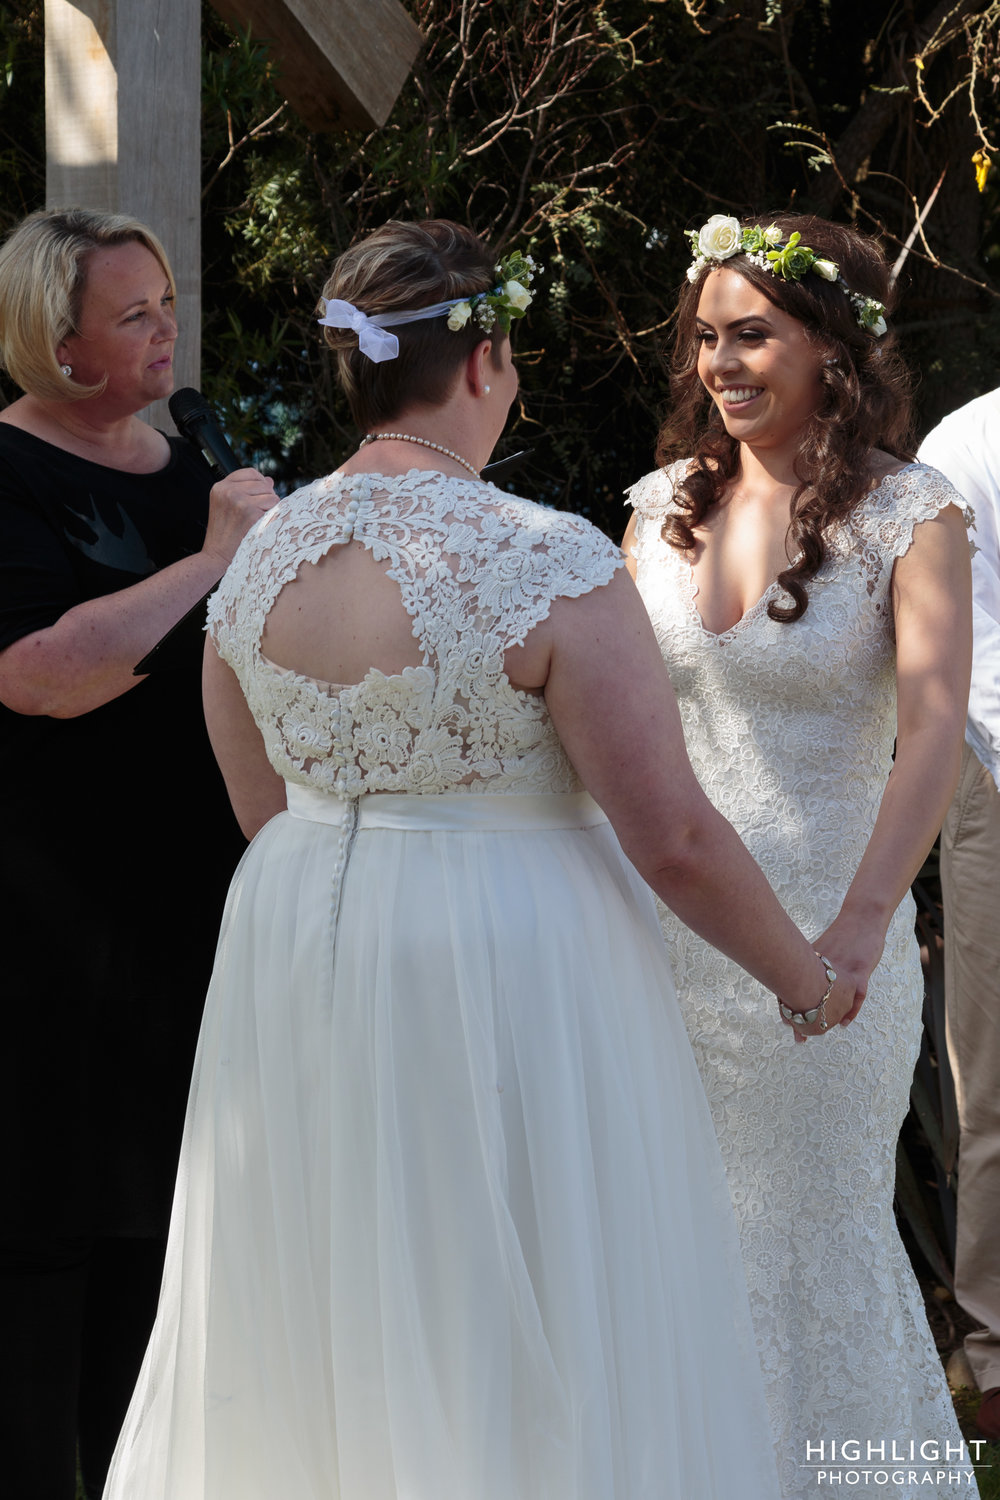 highlight_wedding_photography_makoura_lodge_manawatu_new_zealand-75.jpg